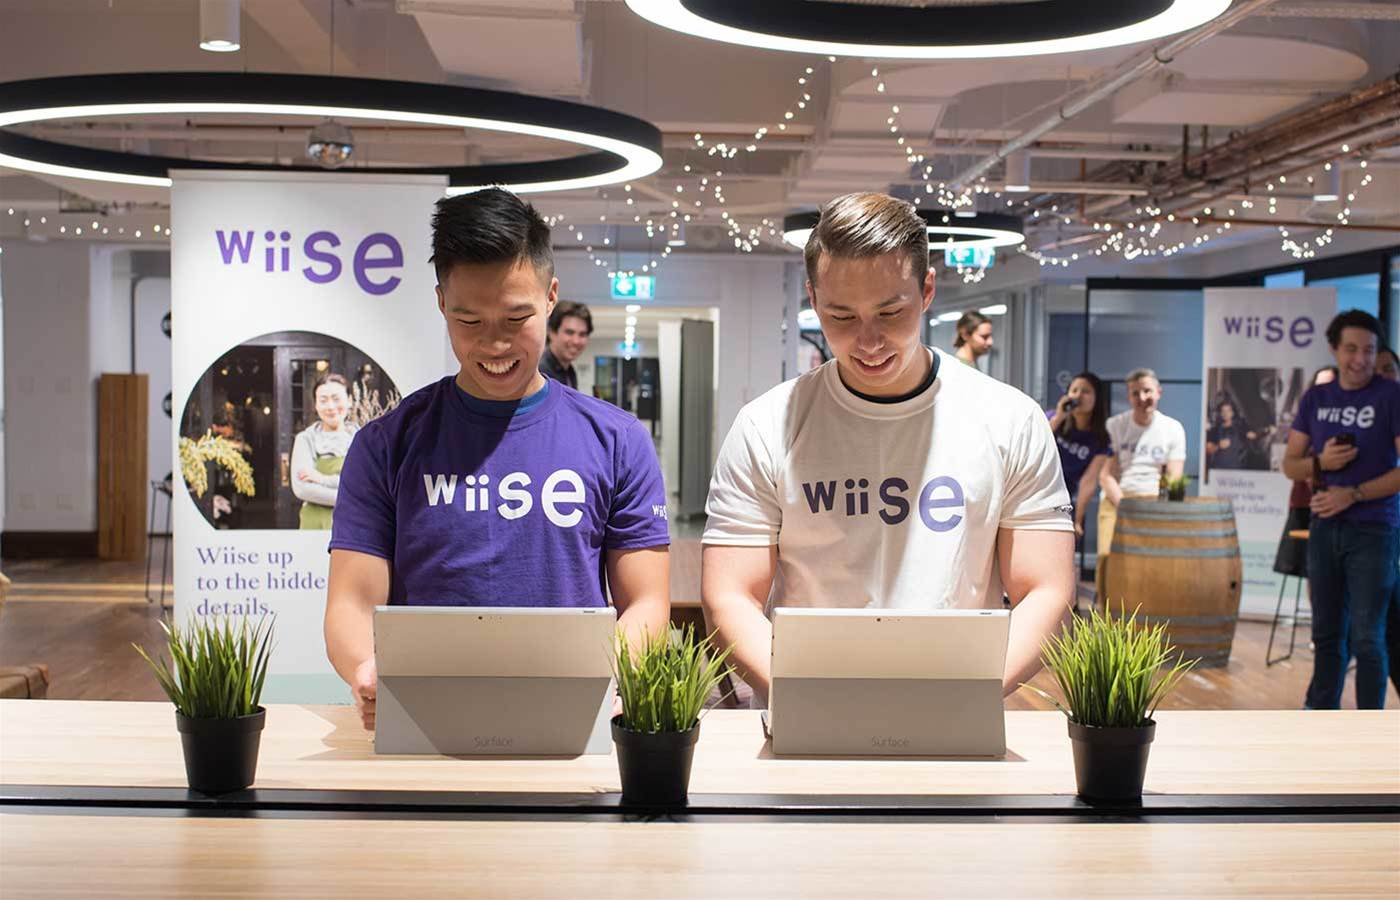 rhipe named first distie for KPMG, CBA's relaunched Microsoft accounting software Wiise